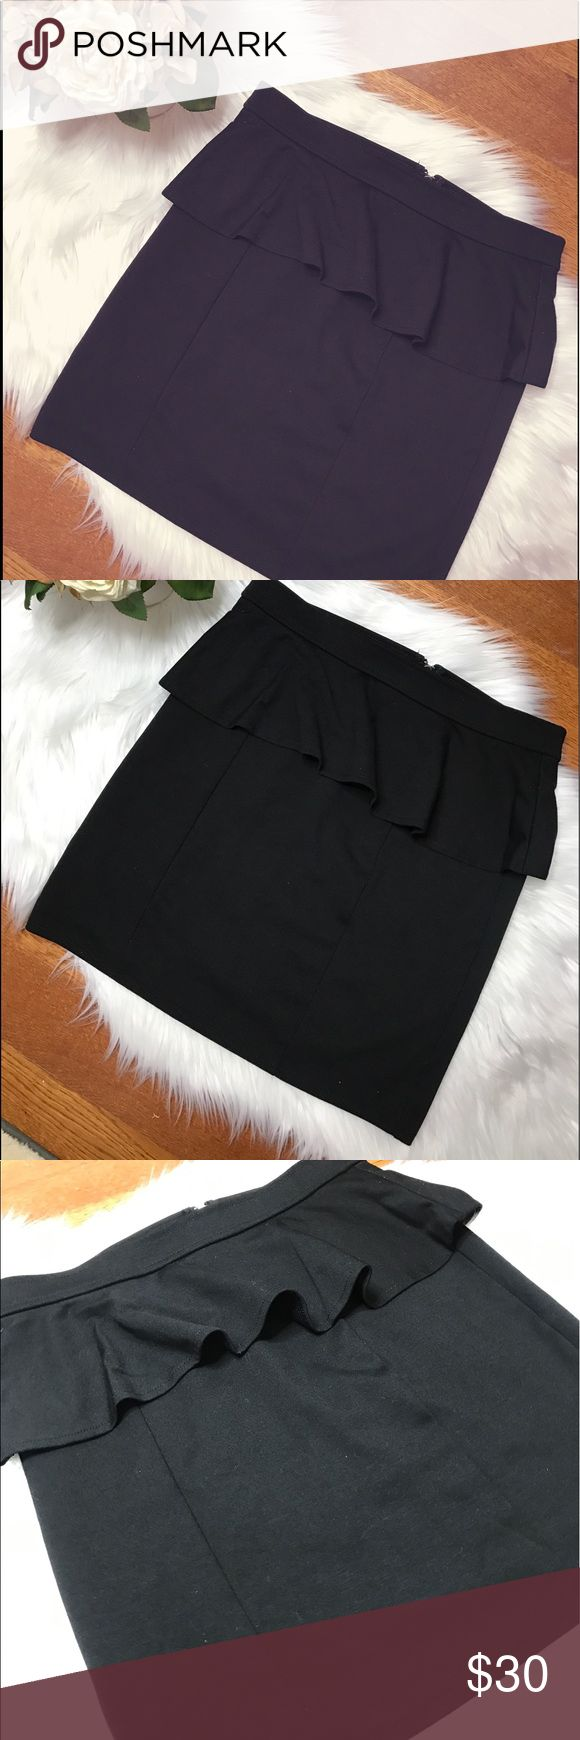 American Eagle Outfitters Black Peplum Skirt Sleek, form fitting, peplum pencil skirt in the shade black. Gently worn, size 6. Looks great on! Very flattering with the peplum upper. Zipper in the back, super easy to put on and comfortable to wear. Professional looking as well. American Eagle Outfitters Skirts Mini